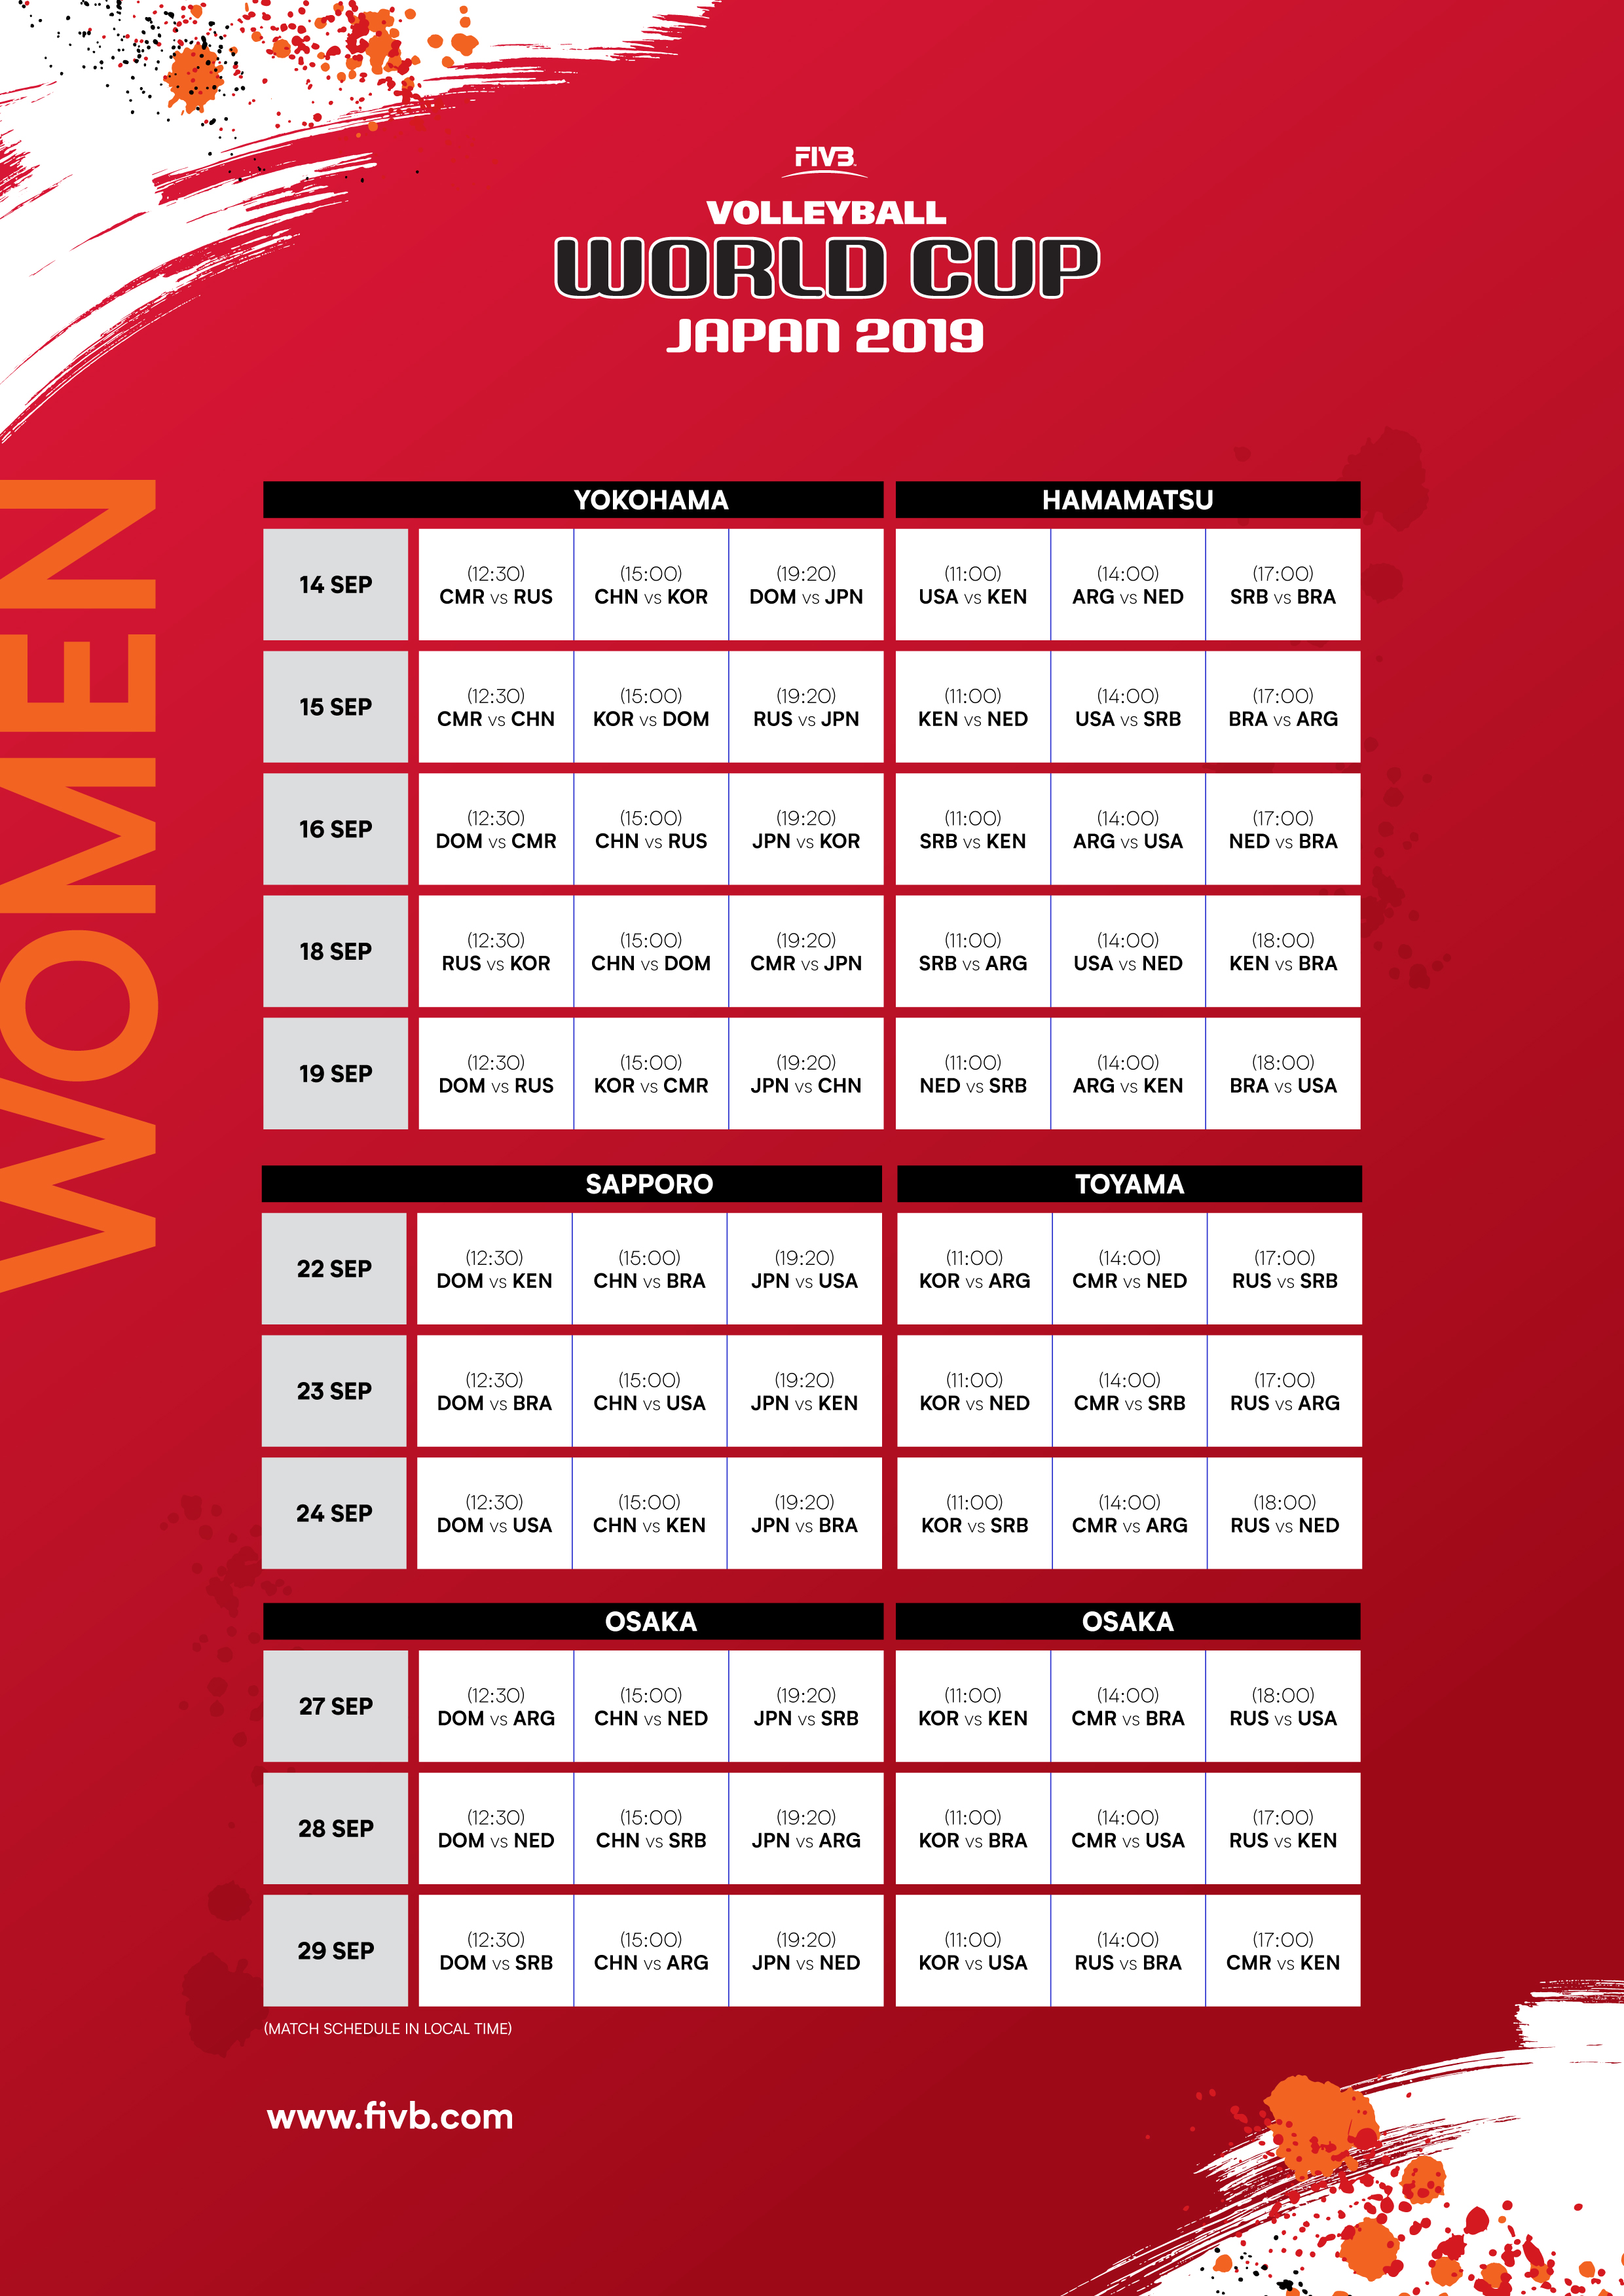 2019 FIVB WORLD CUP MATCH SCHEDULE CONFIRMED - Asian ...